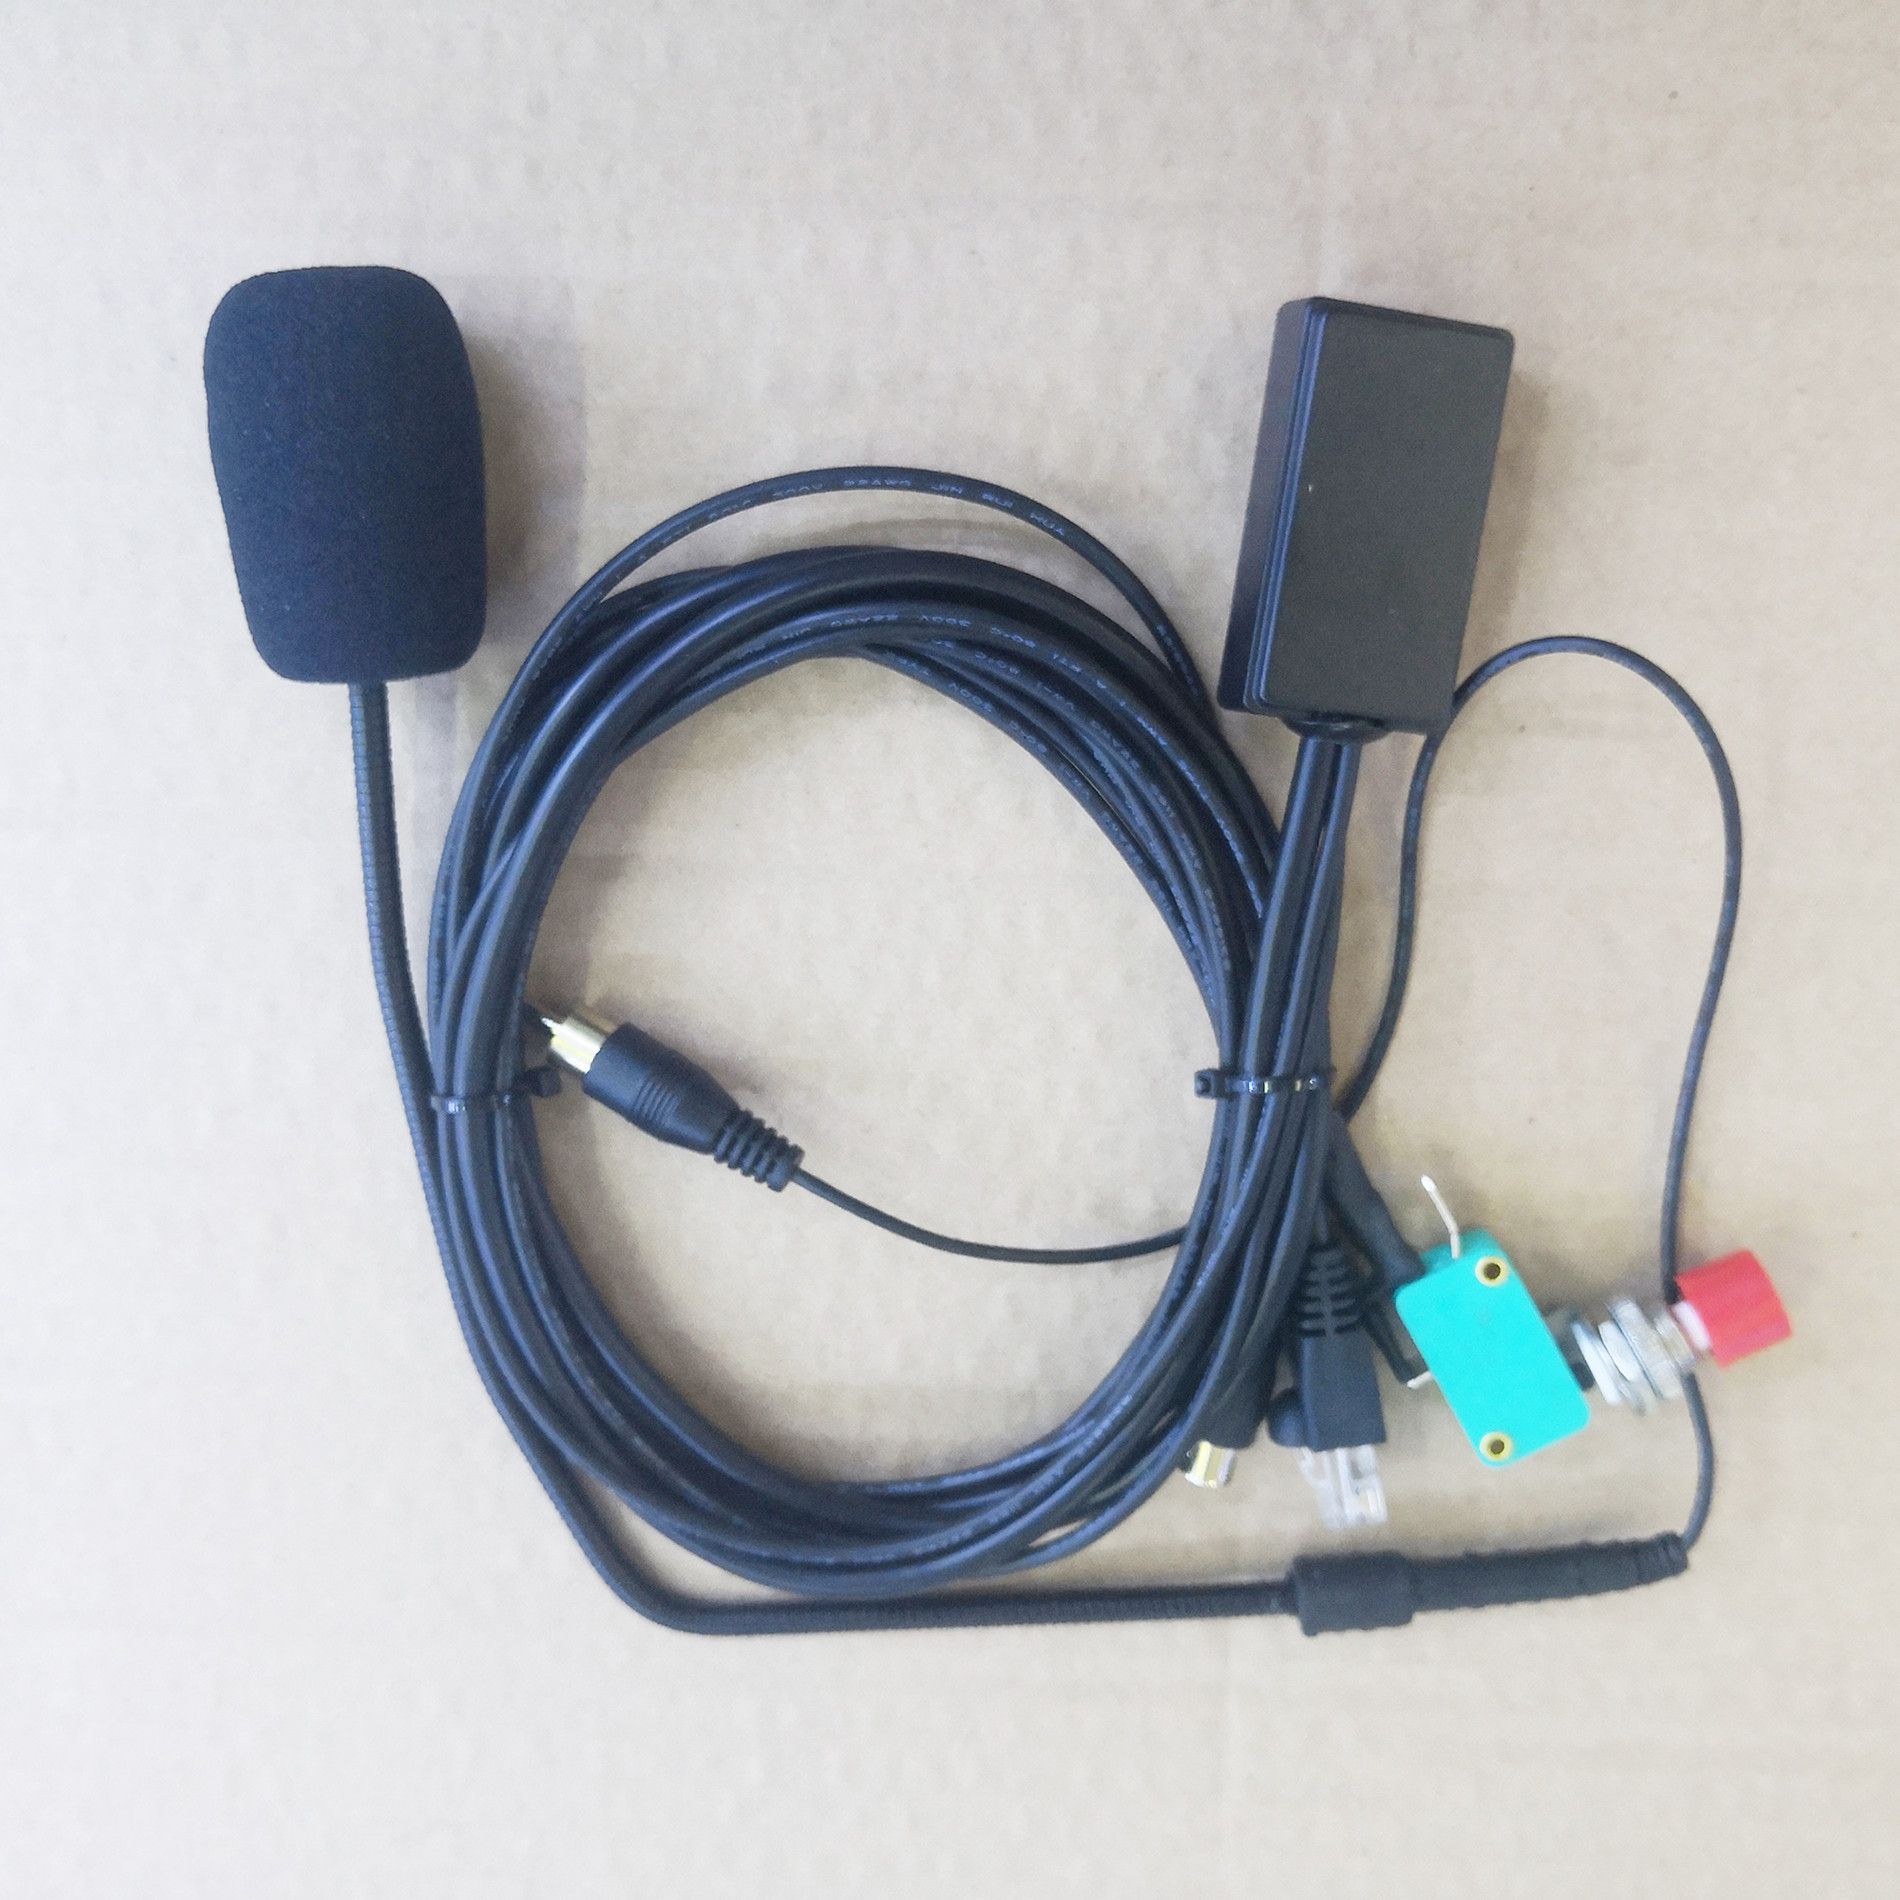 Mic Speaker Handsfree 8 Pins For Motorola GM338,GM950,GM300,GM3188,GM3189,GM3689,GM340 Etc Car Basic Radio For Taxi